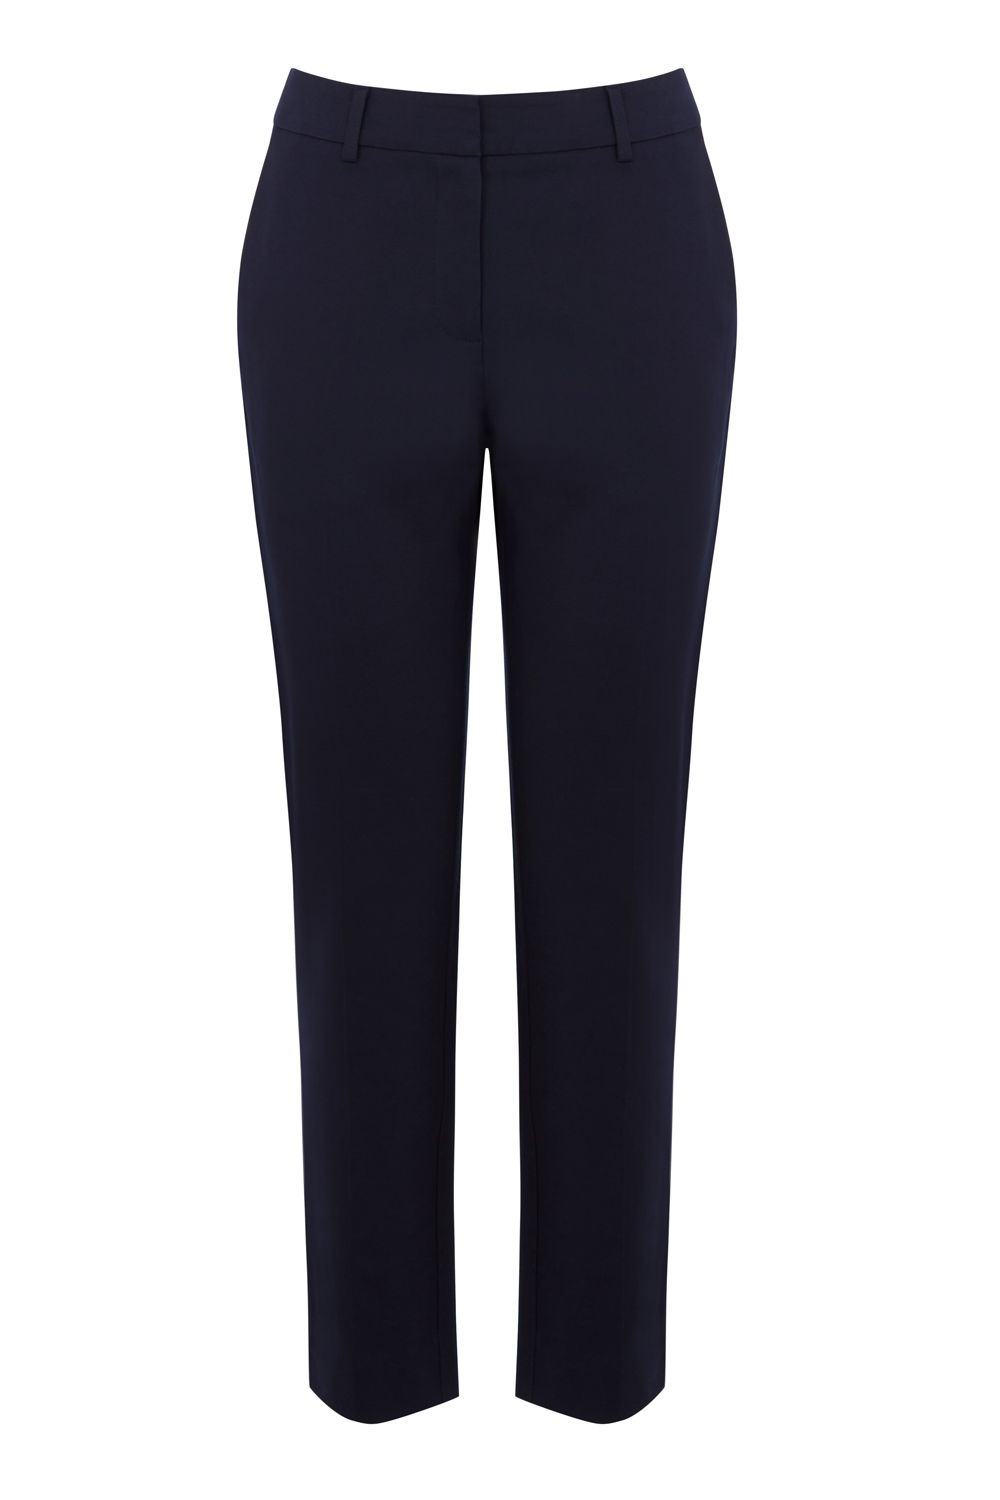 Warehouse Compact Cotton Trousers, Blue